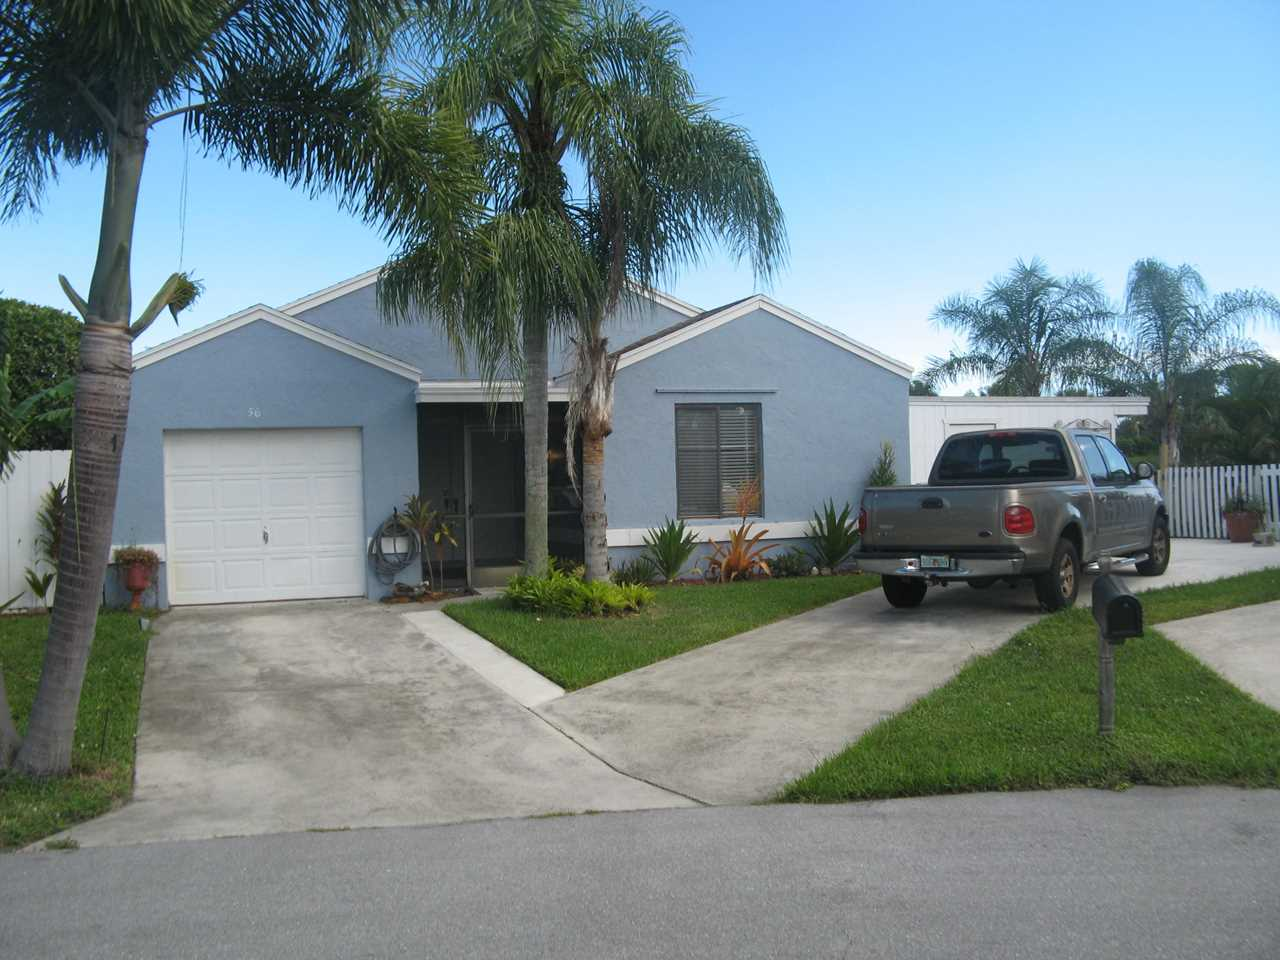 56 Hastings Lane Boynton Beach, FL 33426 - MLS# RX-10465959 | BoyntonBeachRealEstate.com Photo 1